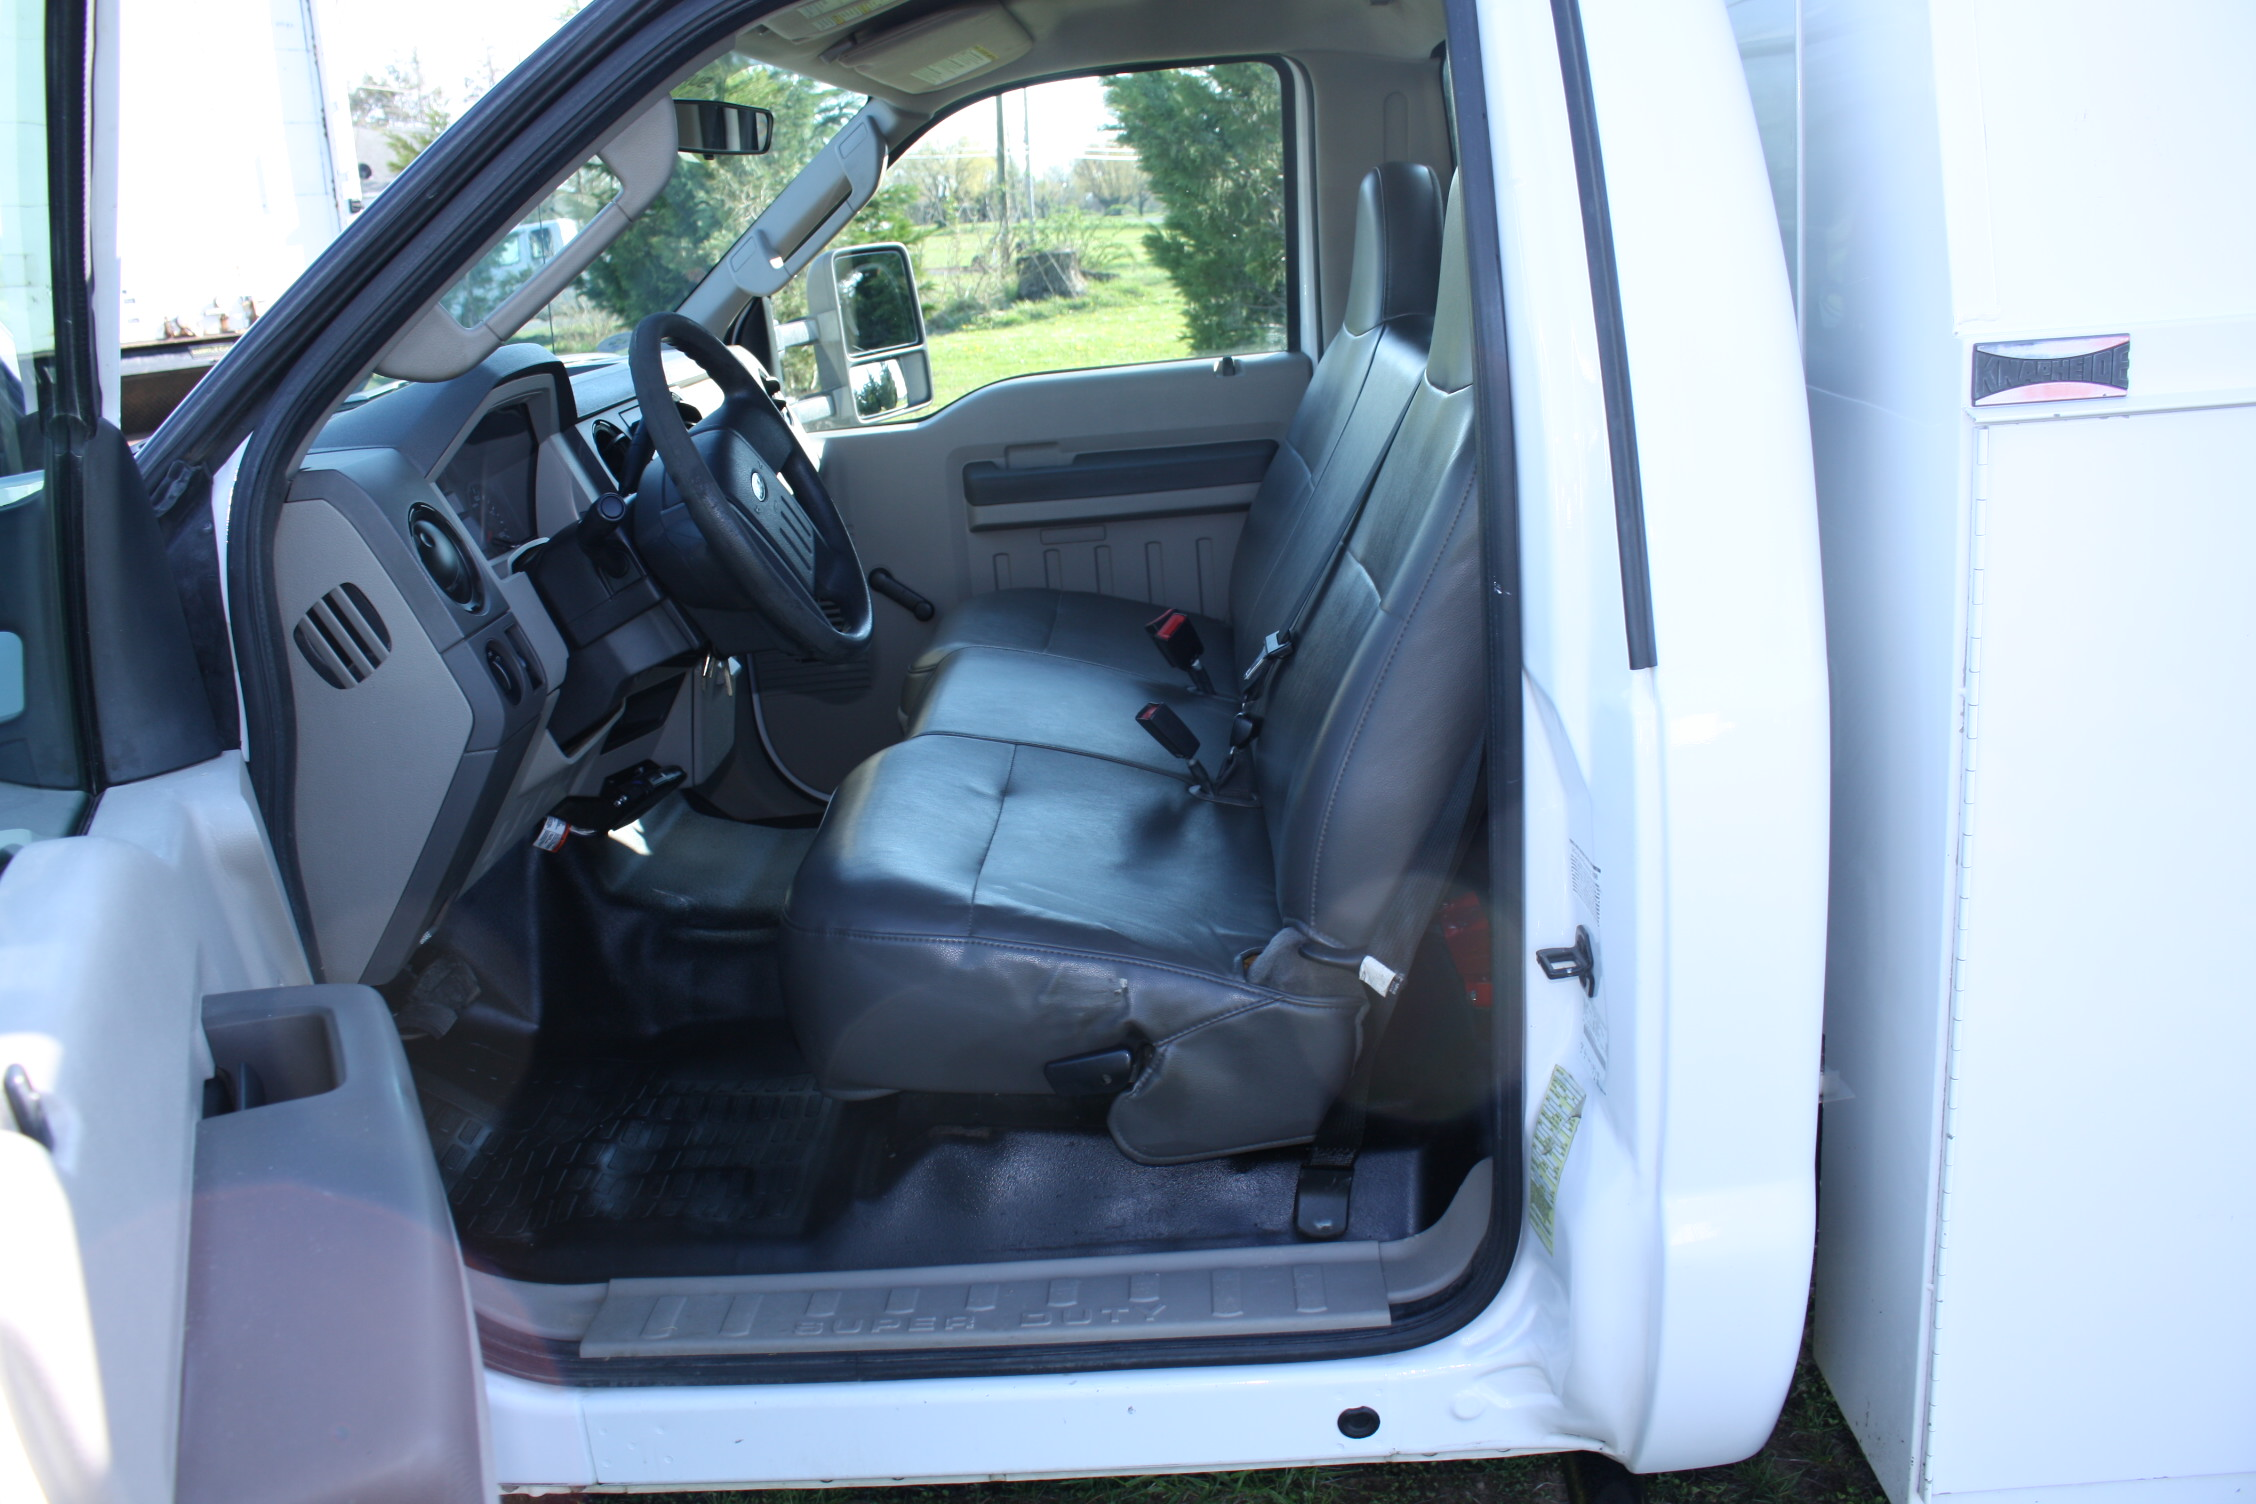 IMG 1217 - 2009 FORD F350 WITH KNAPHEIDE ENCLOSED UTILITY